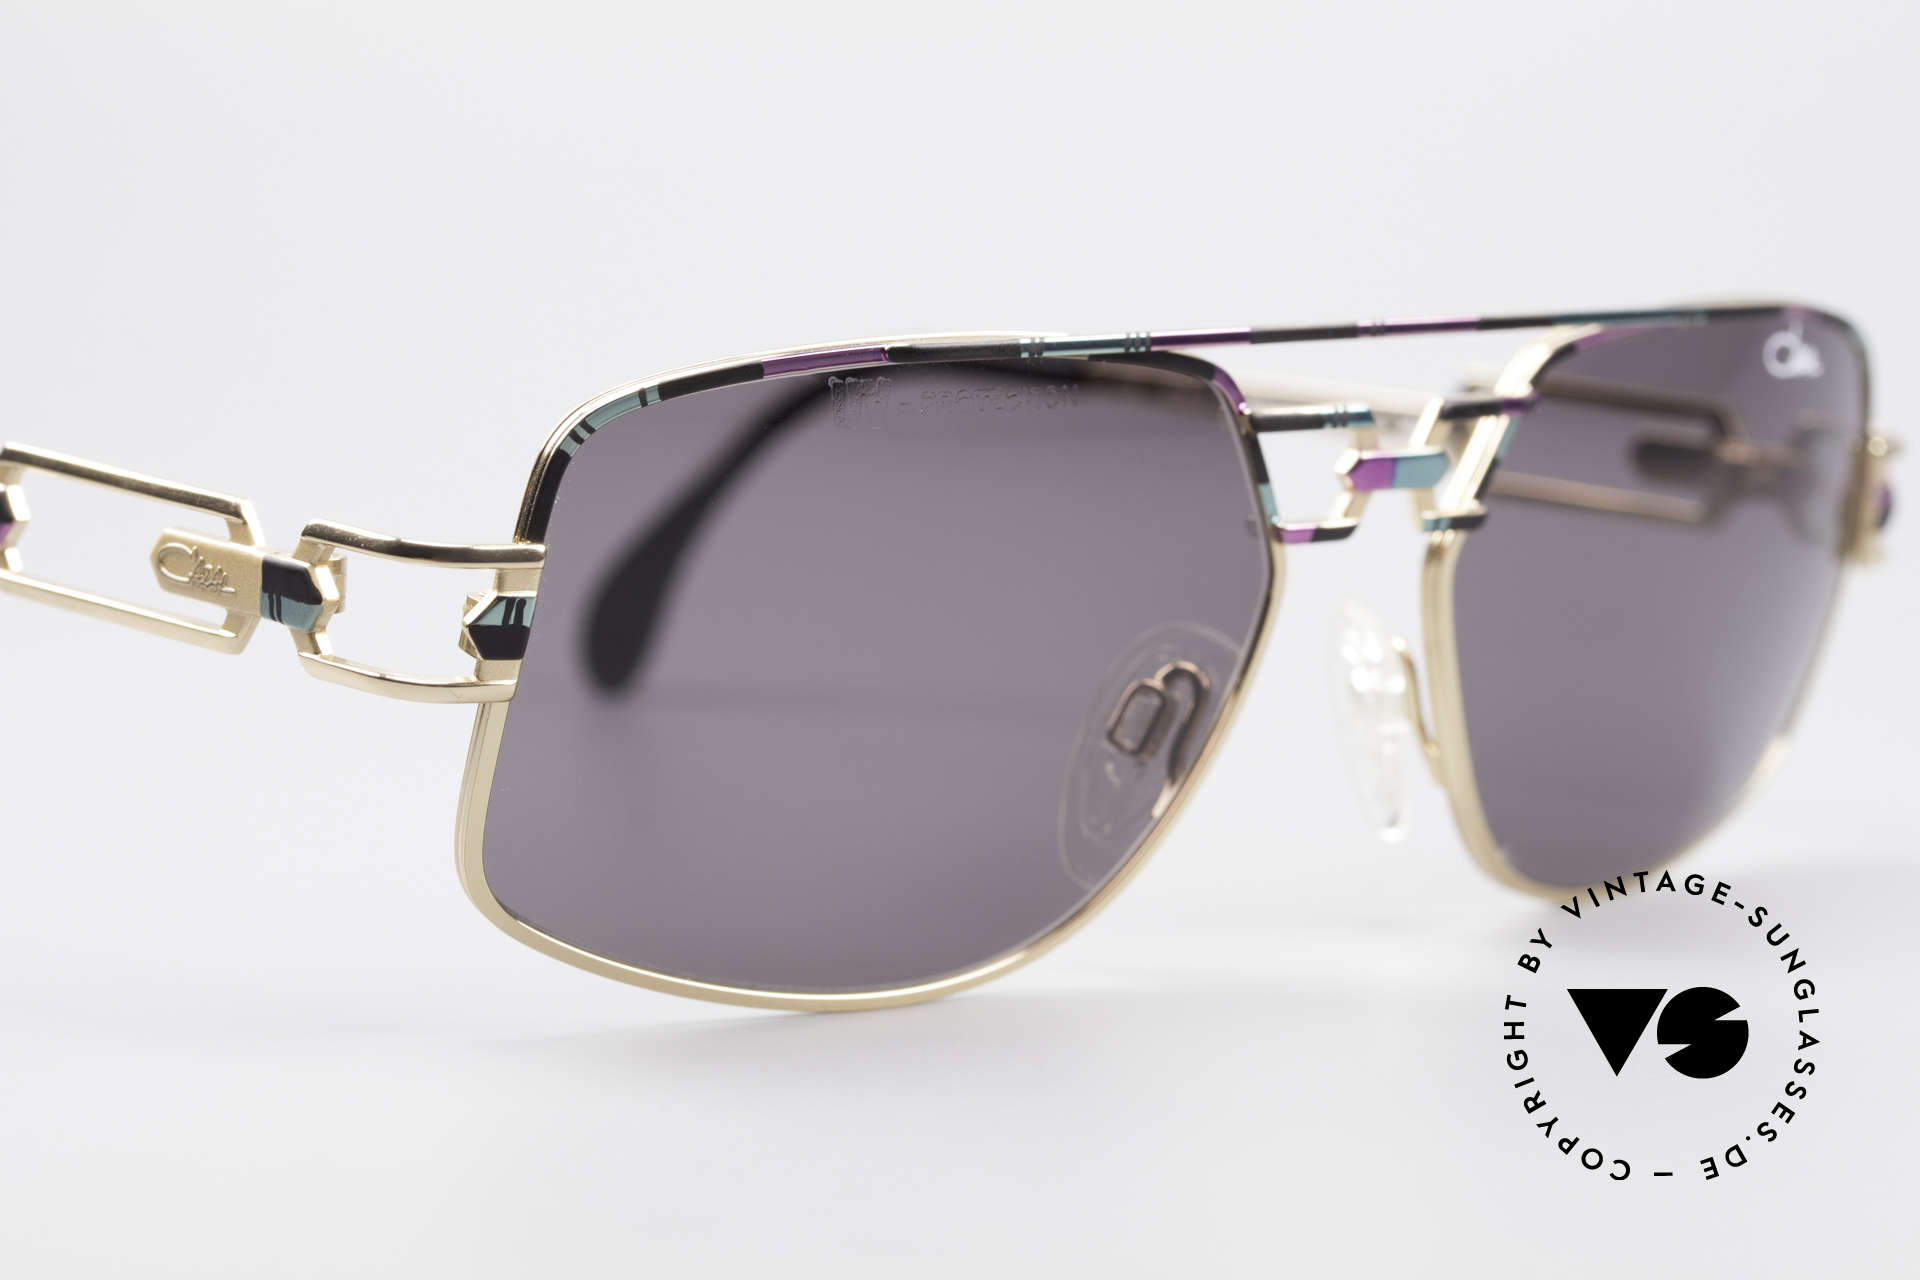 Cazal 972 No Retro Shades True Vintage, NO RETRO EYEWEAR, but a real old ORIGINAL from 1997, Made for Men and Women